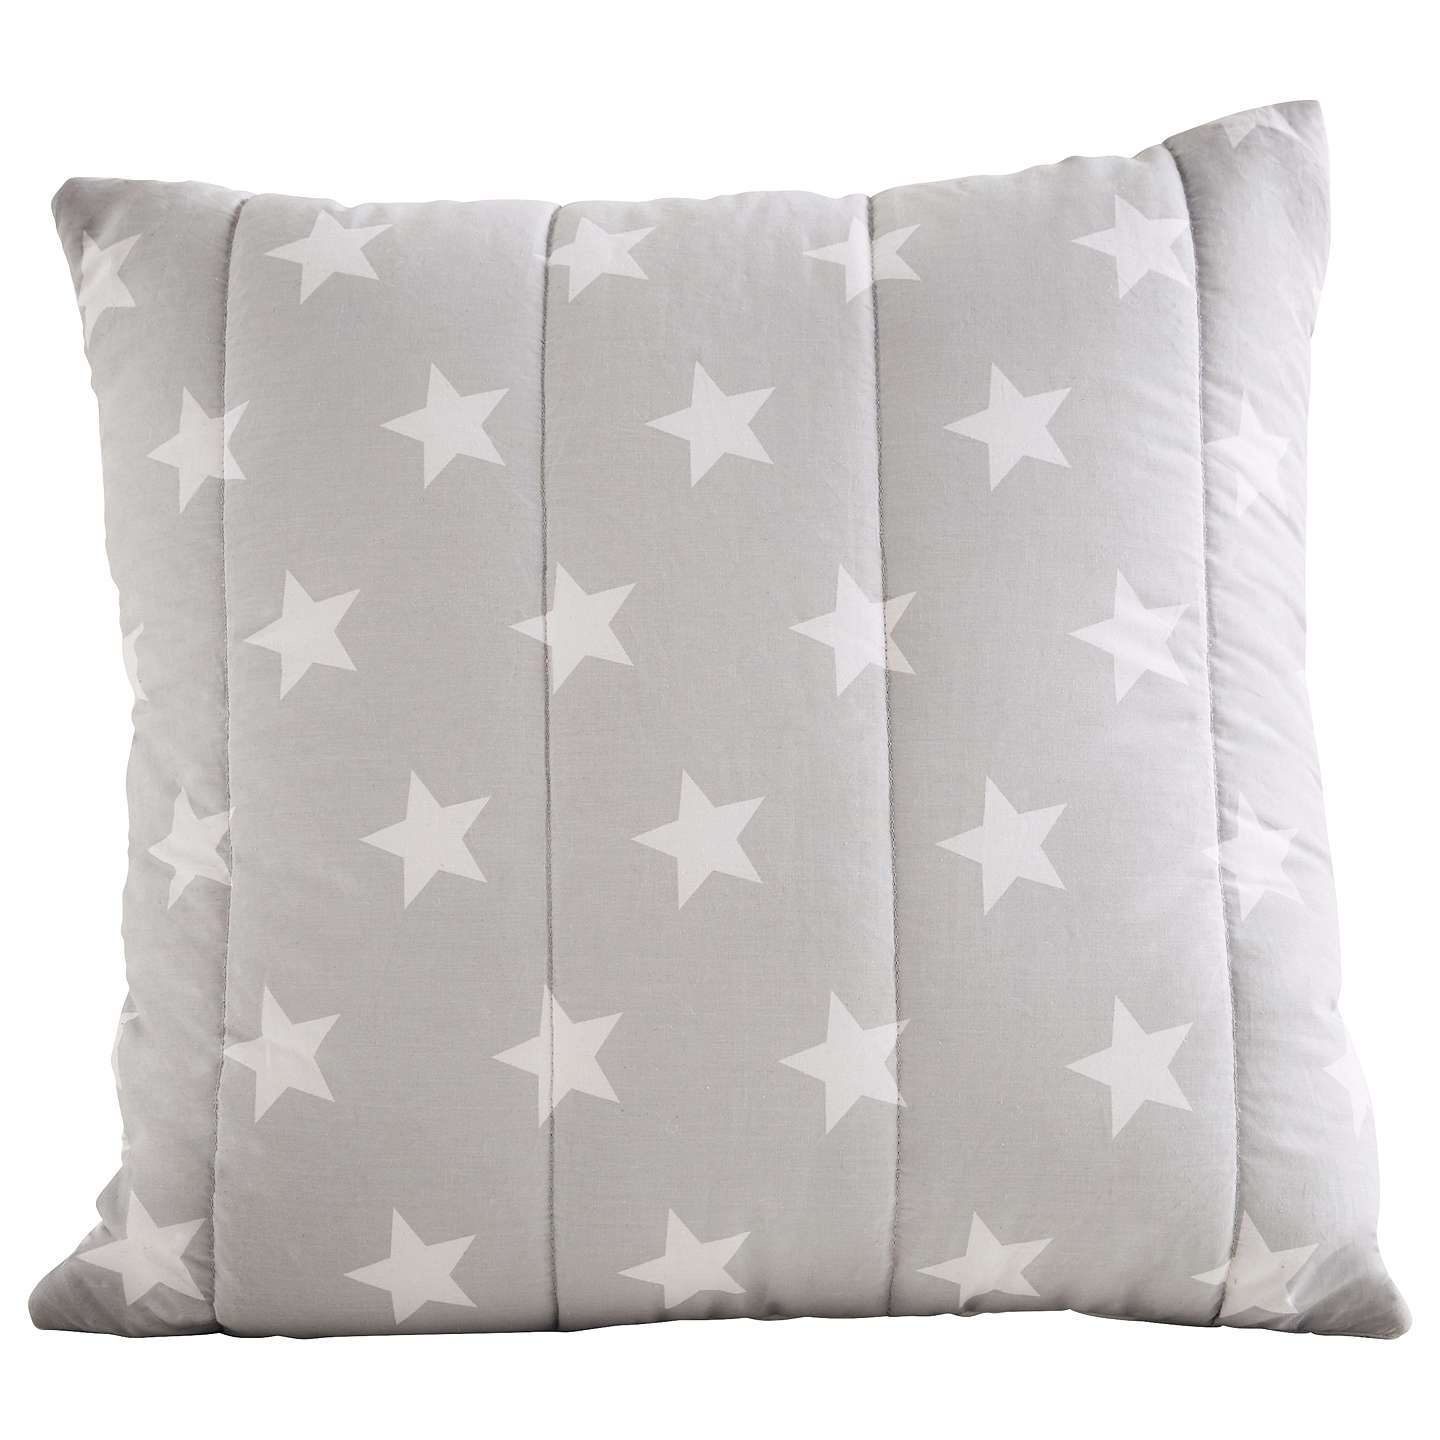 BuyGreat Little Trading Co Quilted Cushion, Grey/White Star Online at johnlewis.com